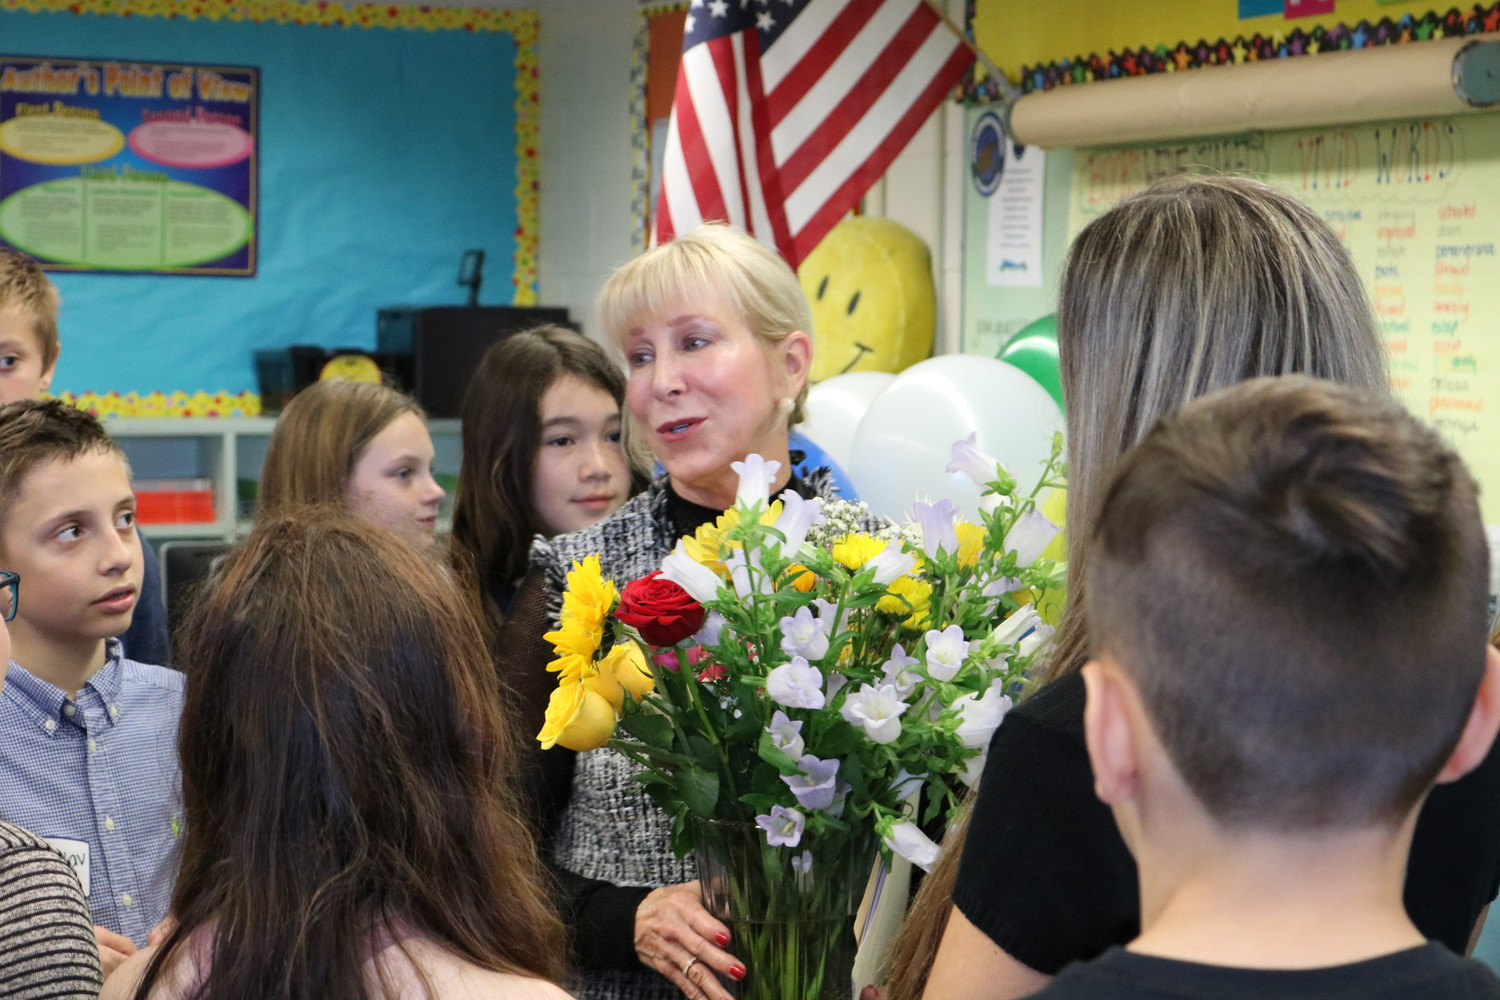 PVPV-Rawlings Elementary School students show their appreciation to First Lady Ann Scott by giving her a bouquet of flowers.